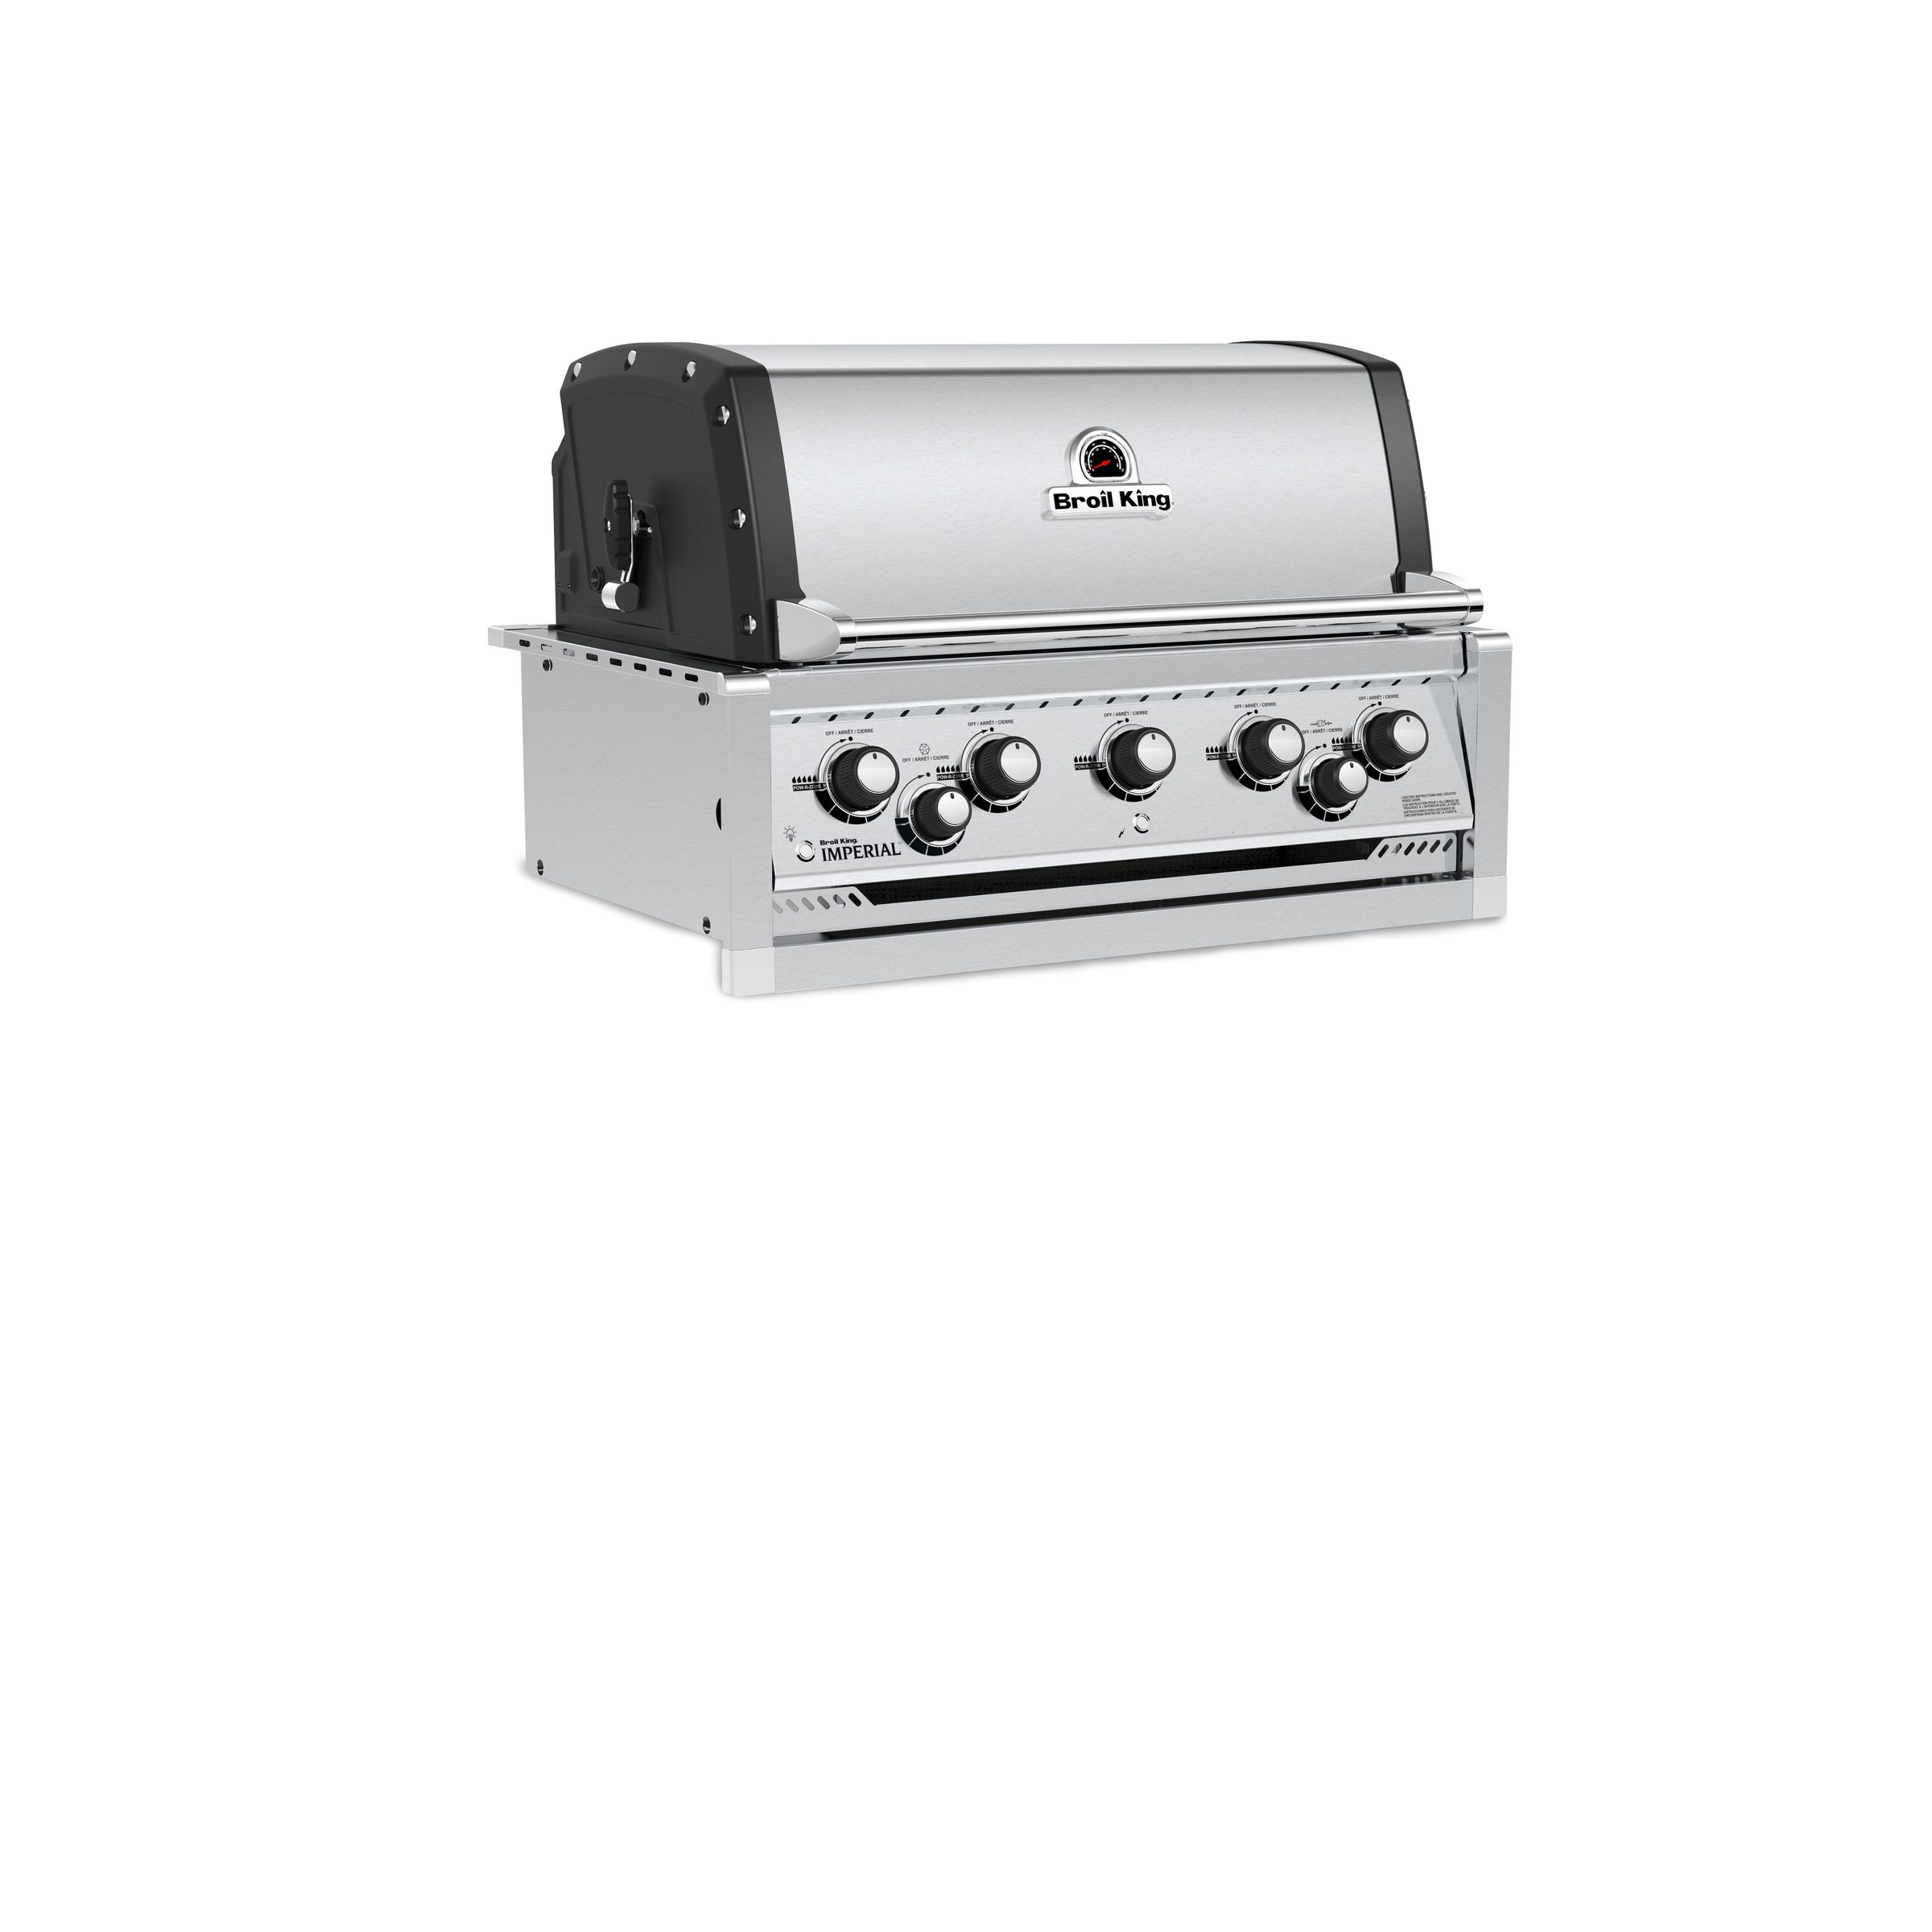 Broil King Imperial 590 Pro - Built-In Head